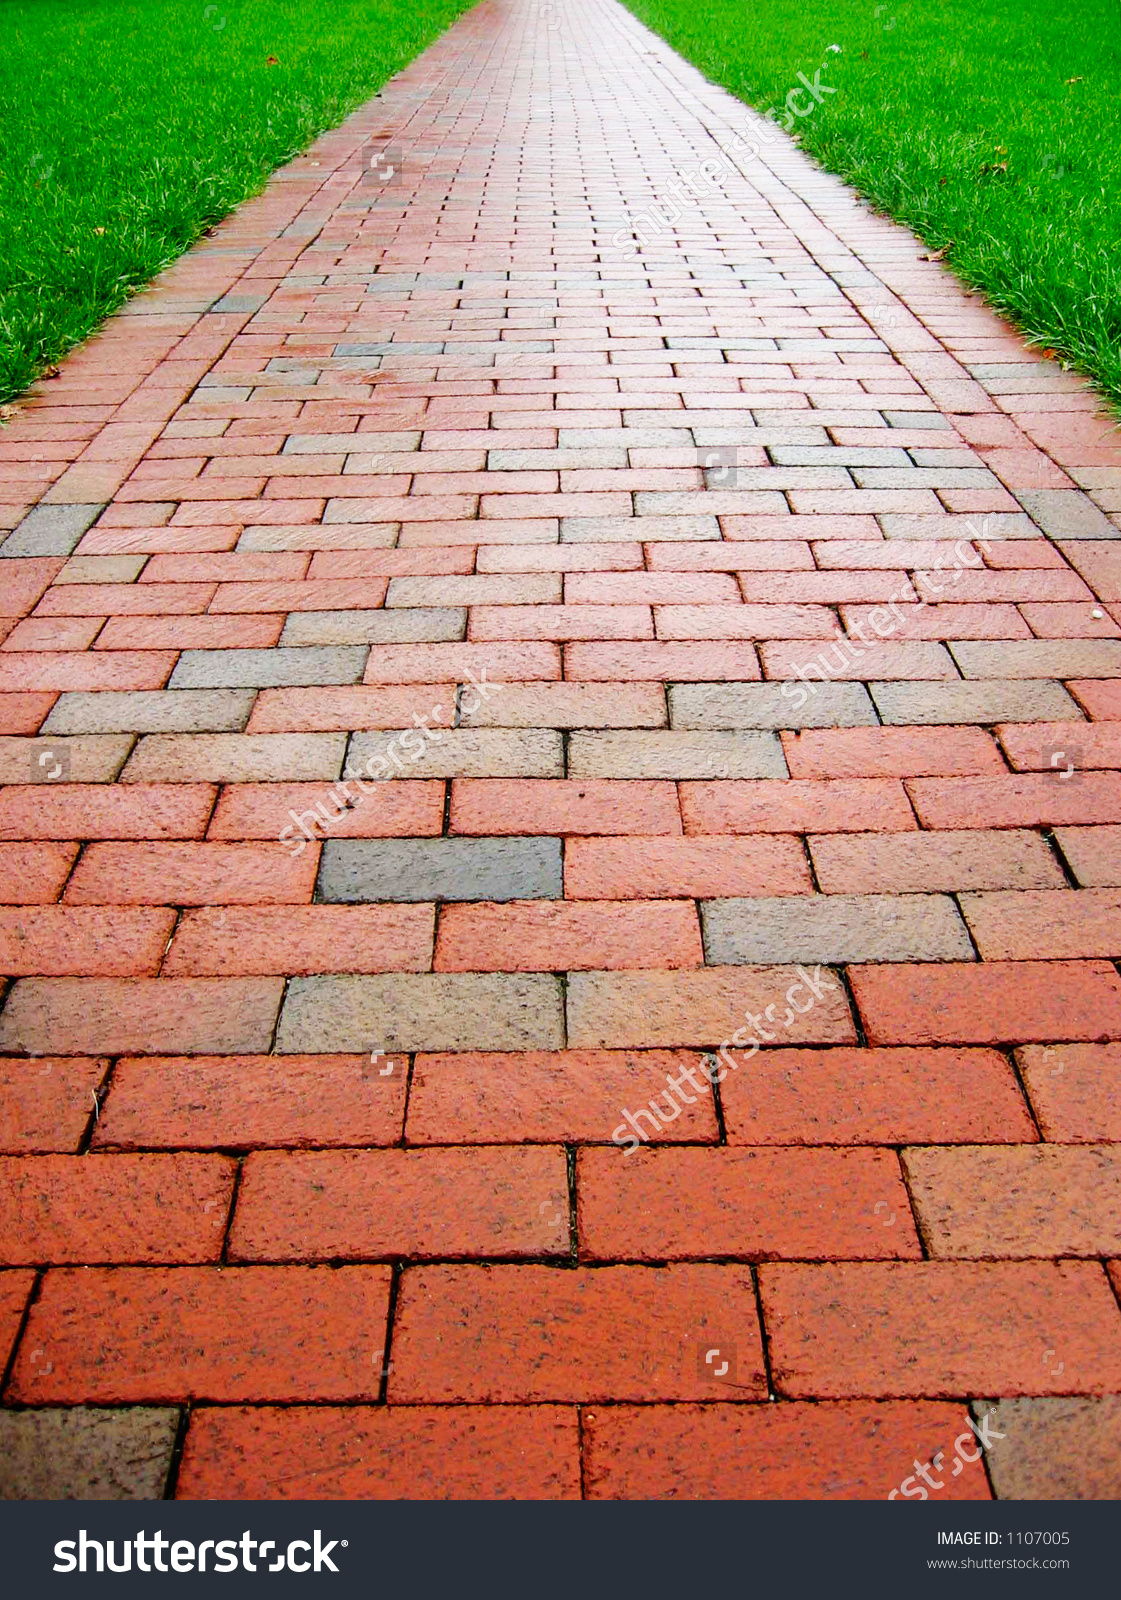 Road clipart brick path #5